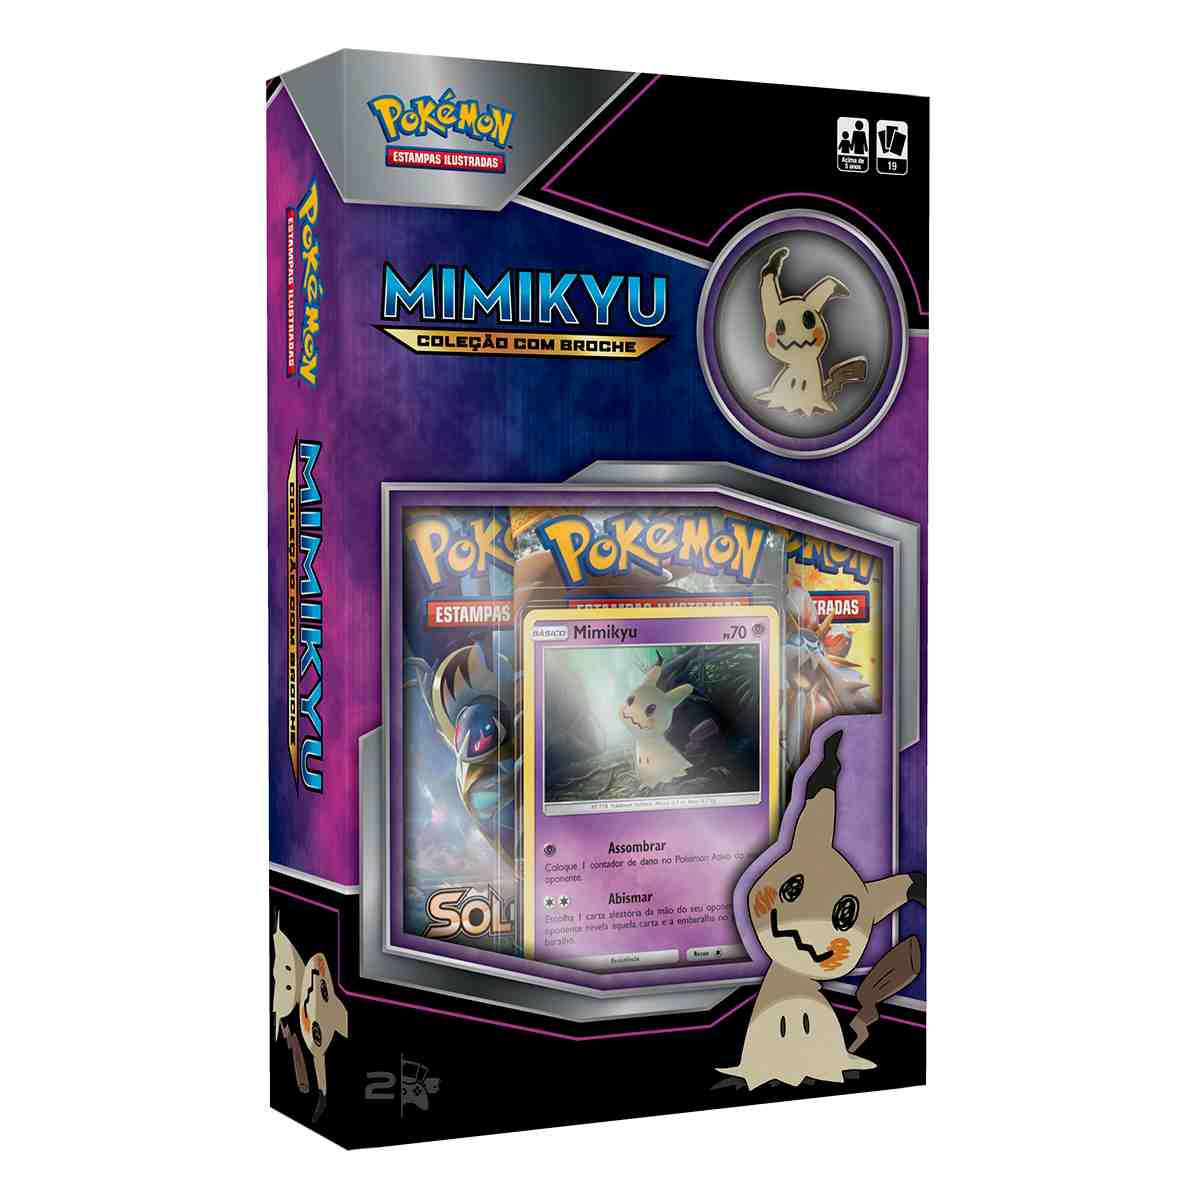 Pokemon Mini Box Mimikyu Com Broche